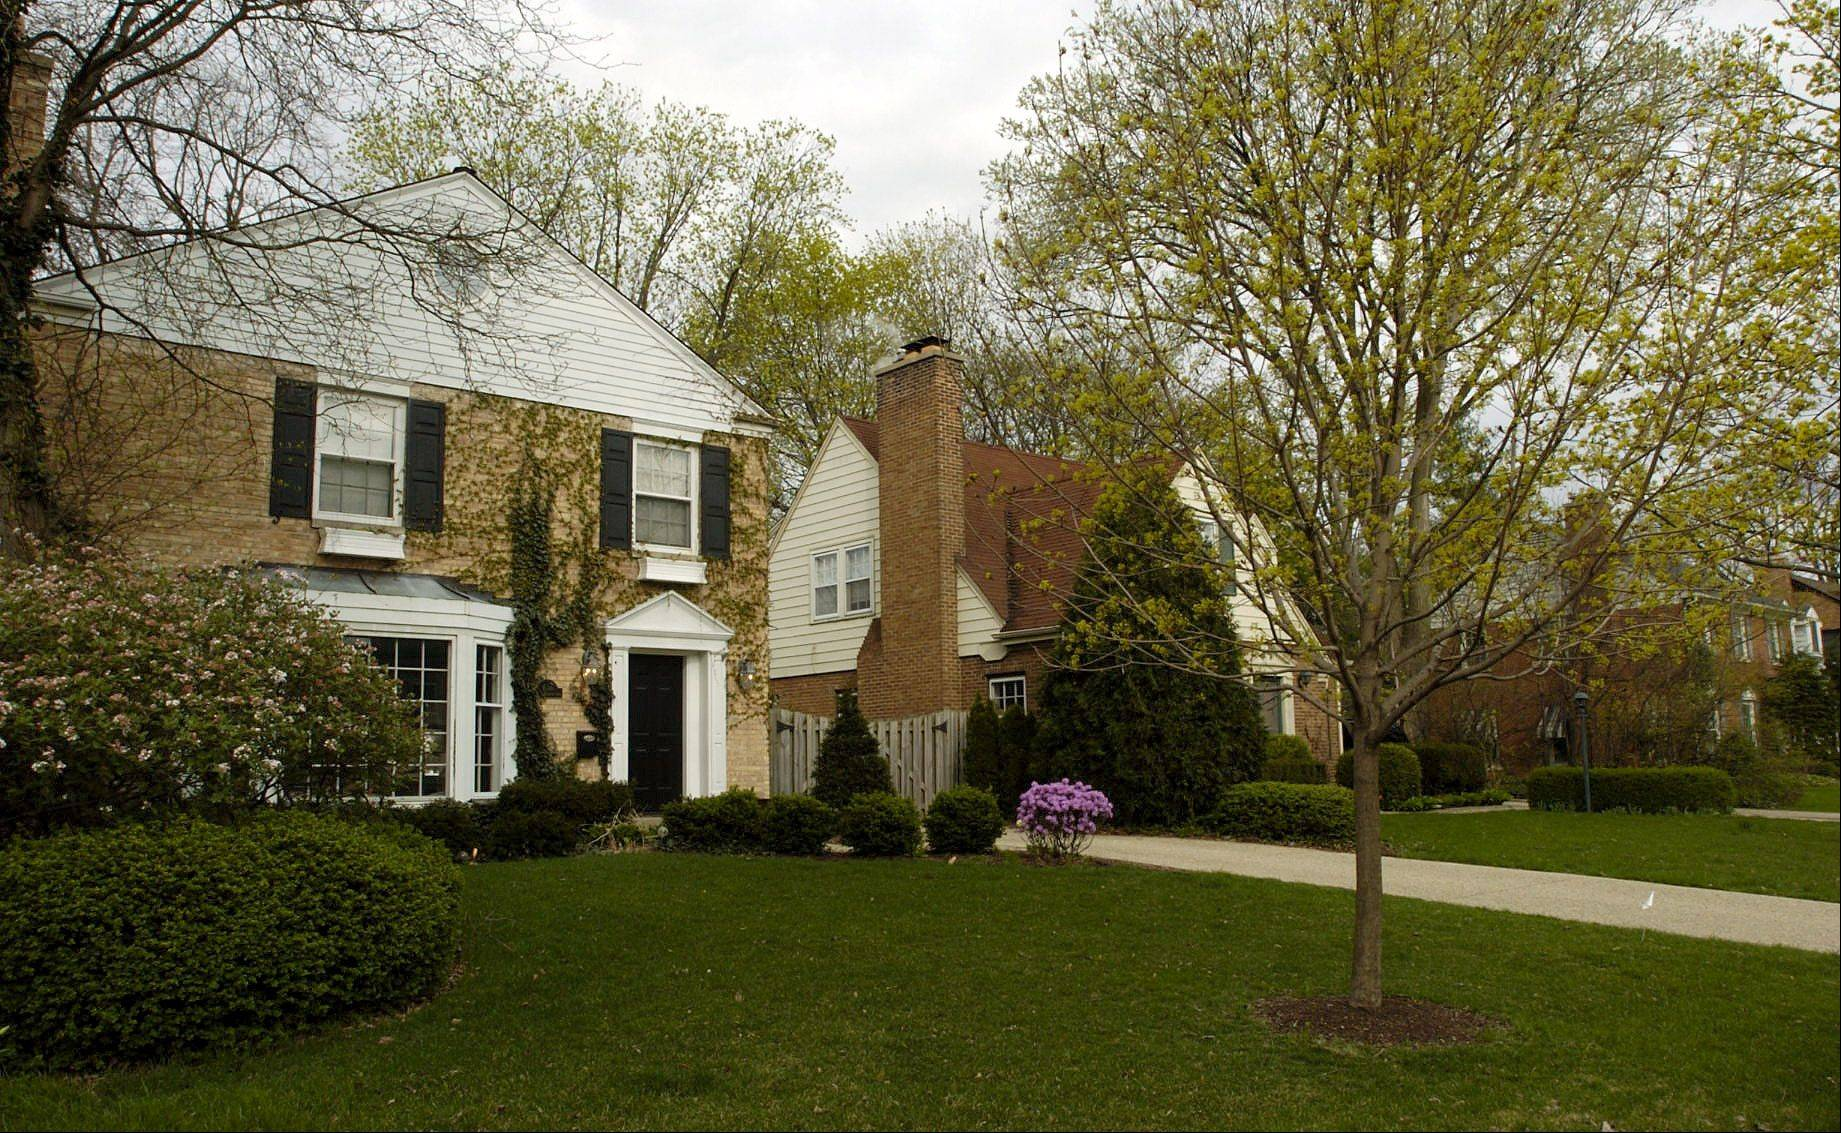 Homes along Belmont Avenue east of Arlington Heights Road are in the Scarsdale neighborhood.